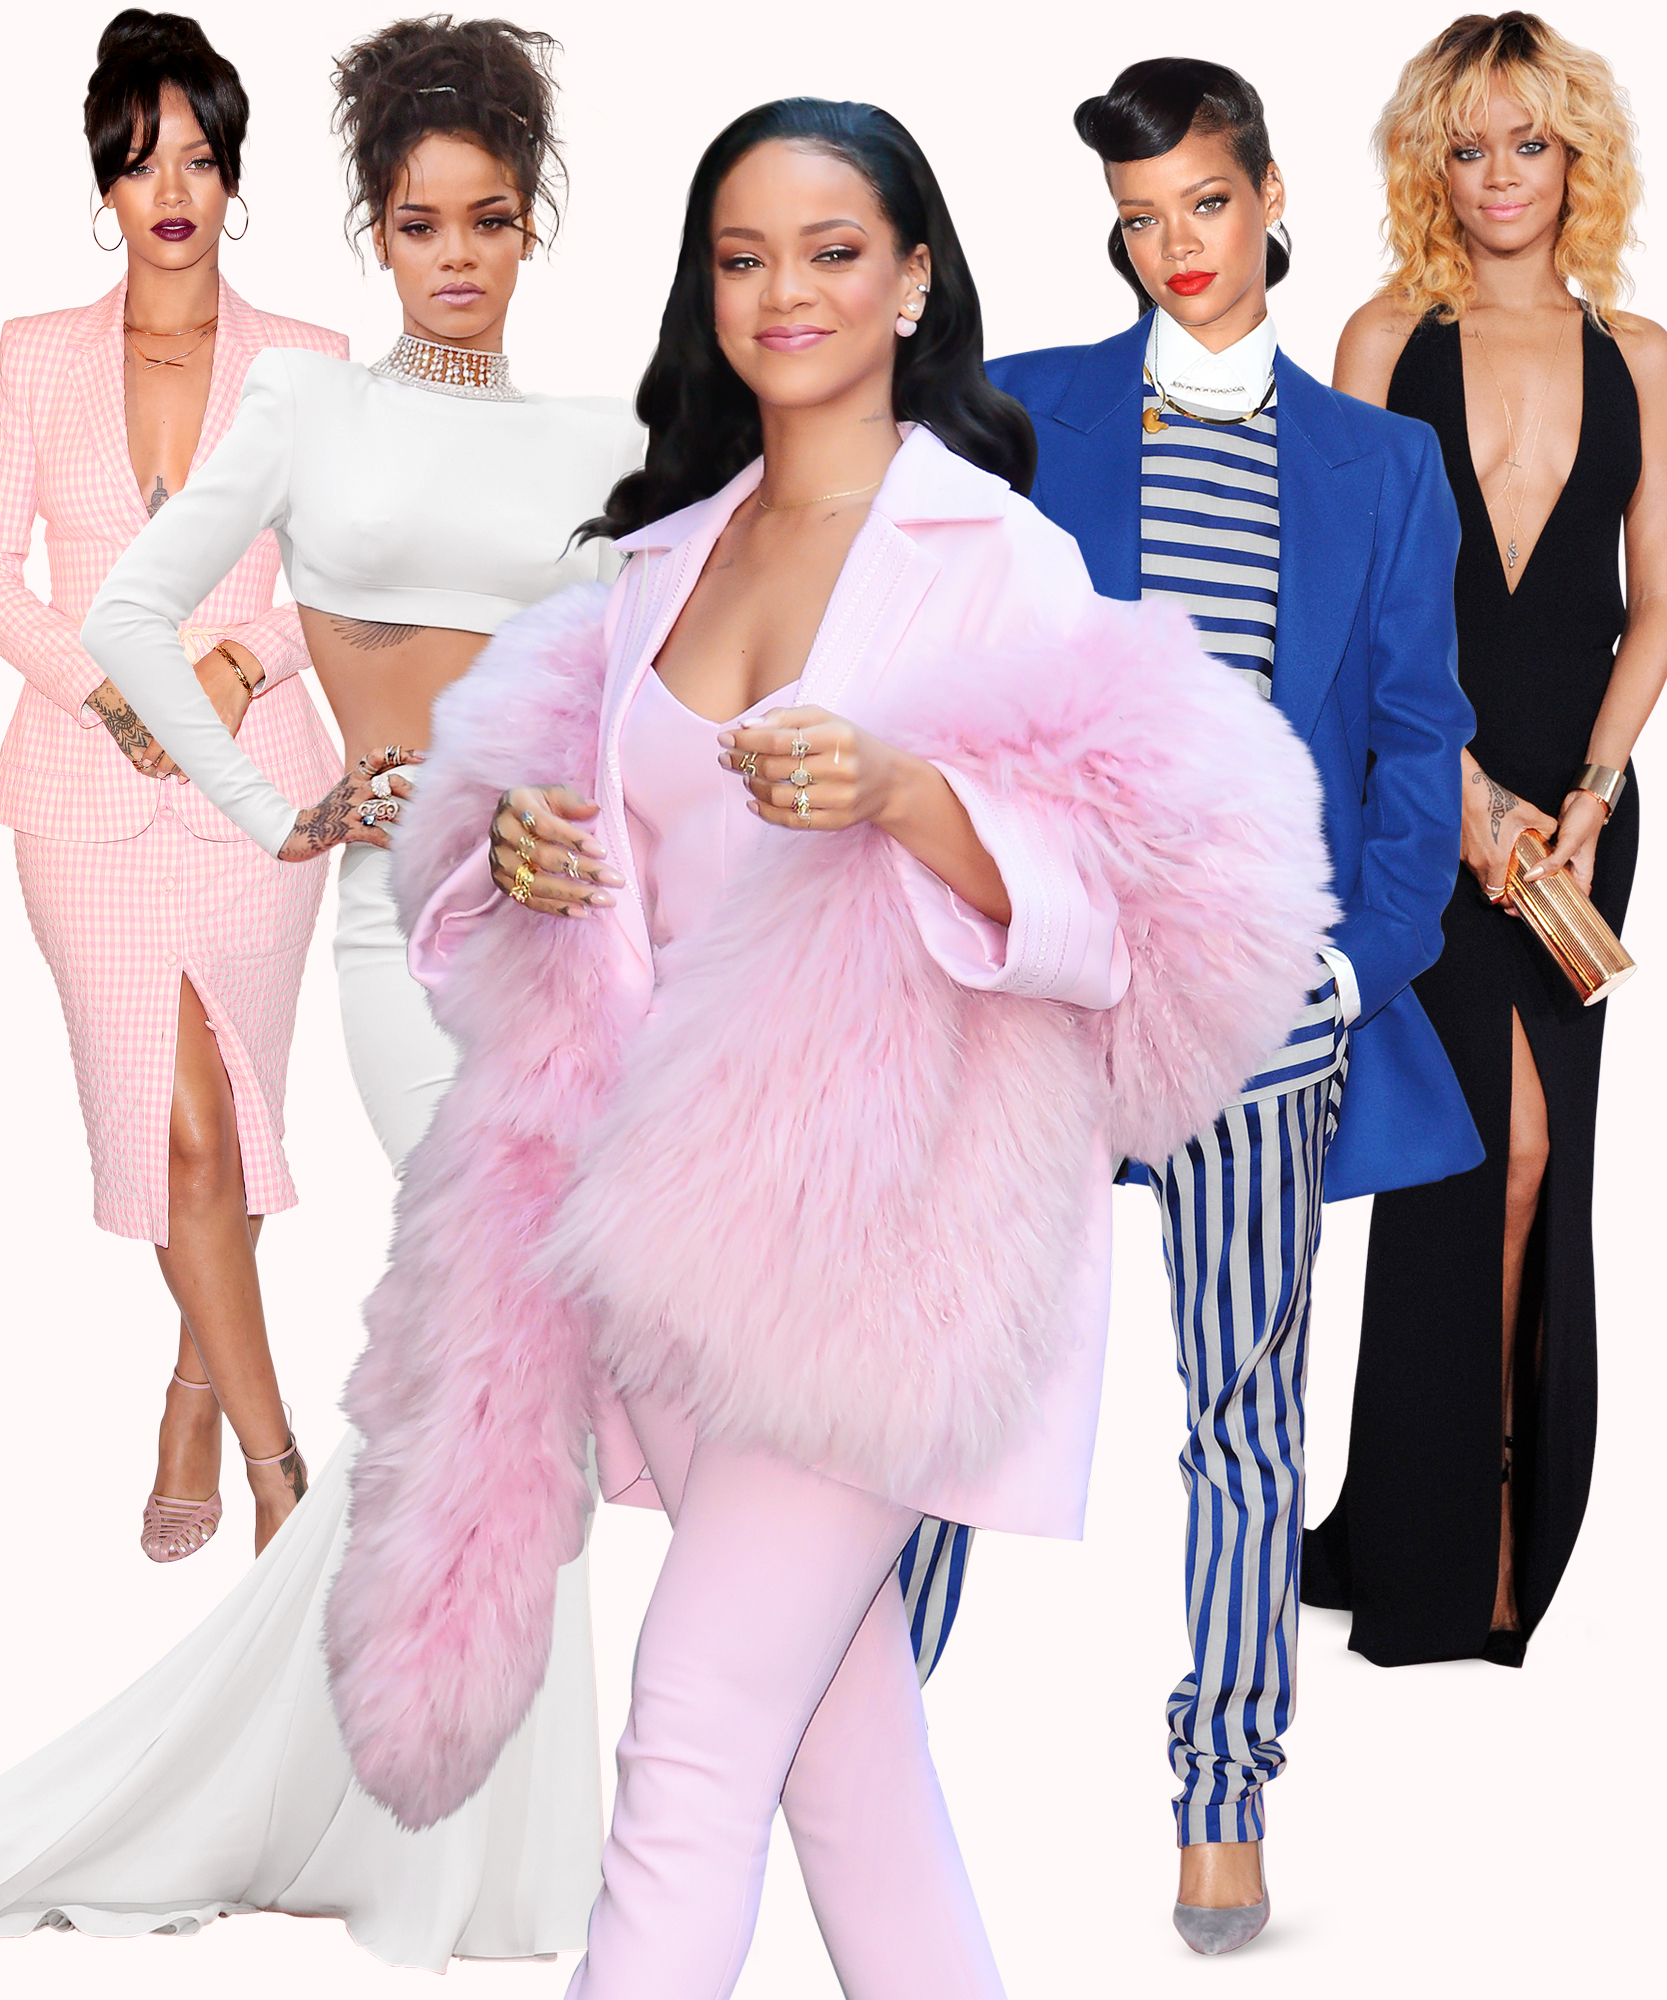 14 Looks That Made Rihanna an International Fashion Icon